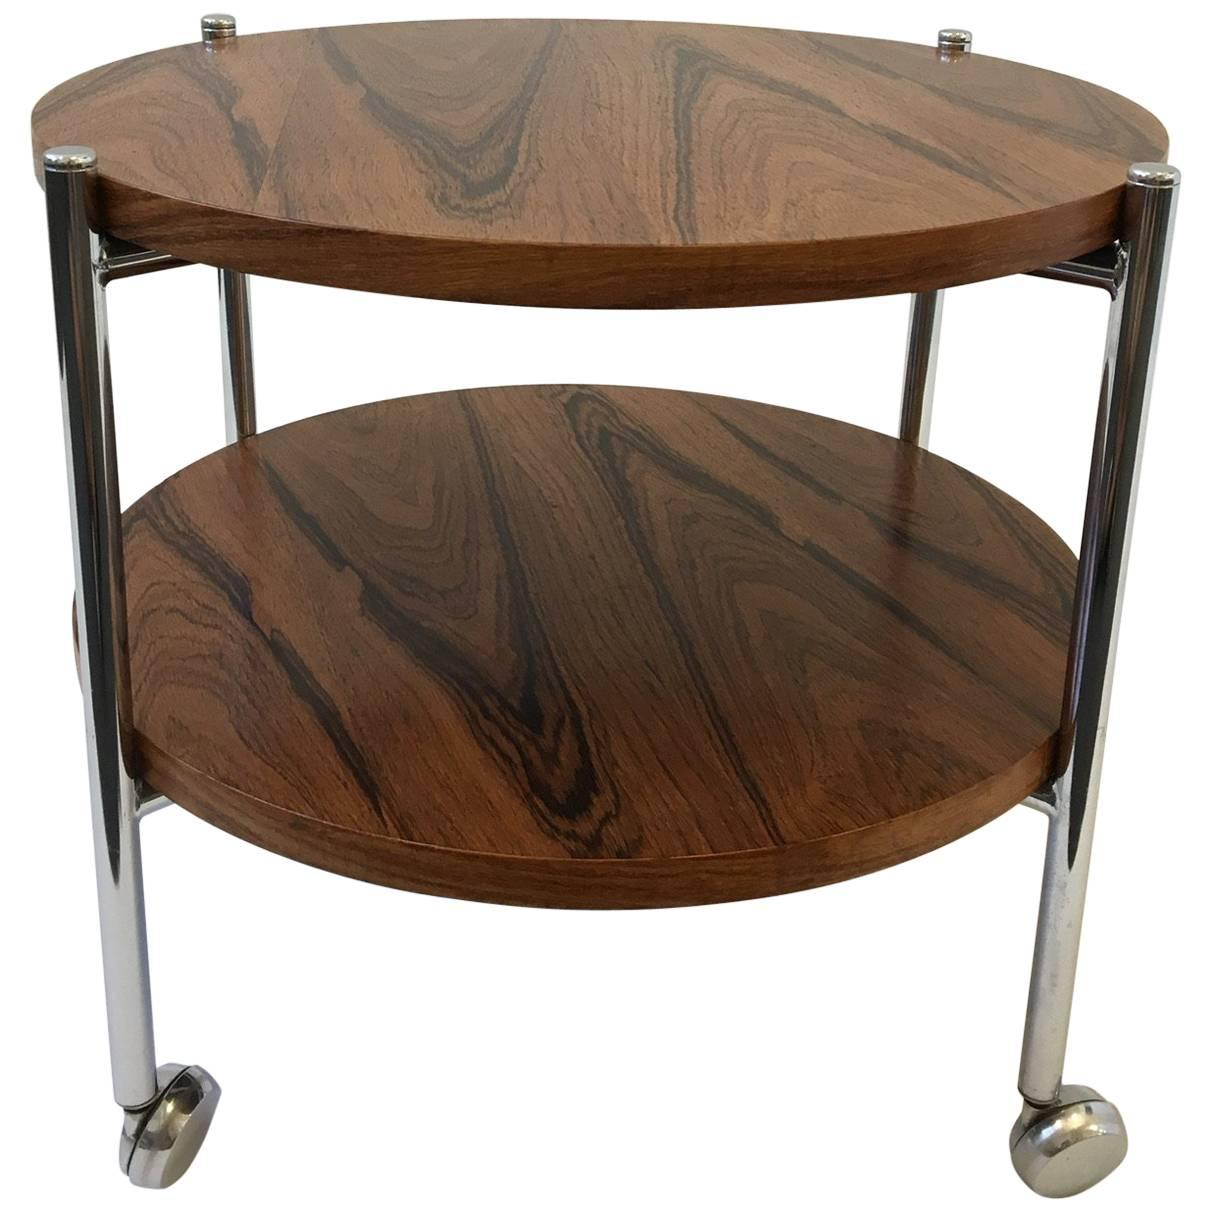 Charmant Rosewood And Chrome Two Tier Folding Side Table For Sale